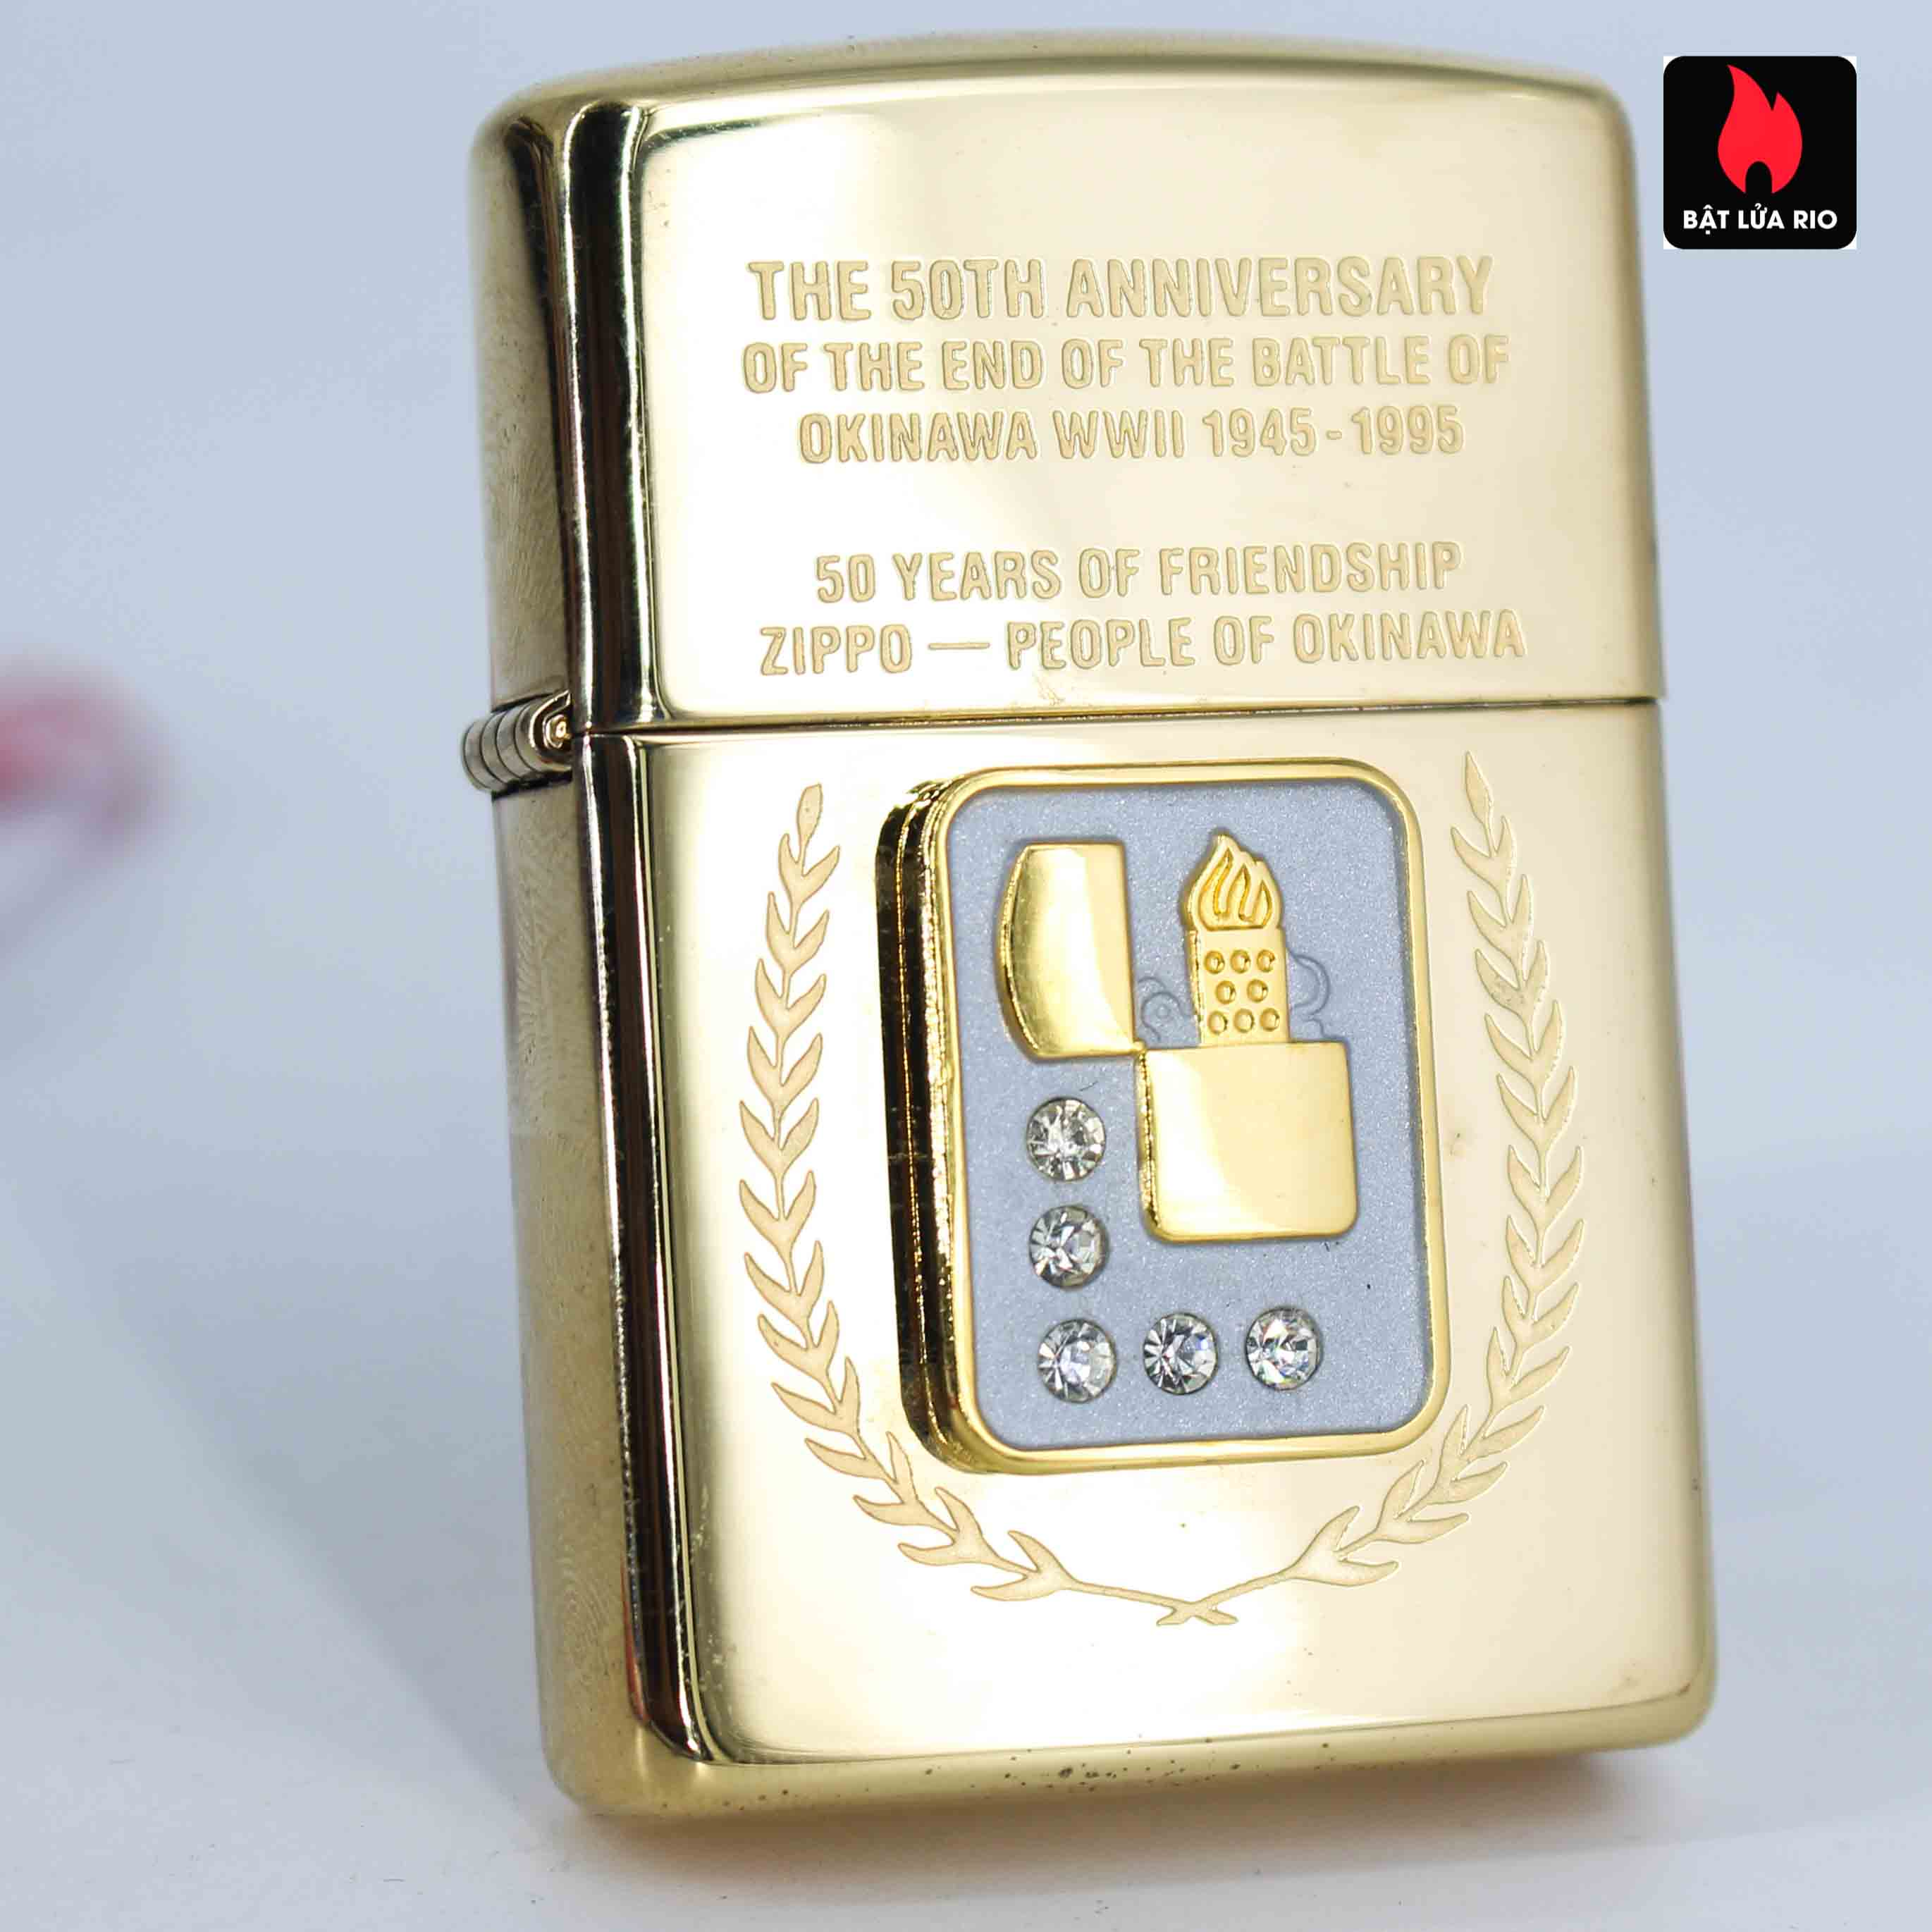 Zippo La Mã 1995 - 50th Anniversary Of The And Of The Battle Of Okinawa WWII 1945-1995